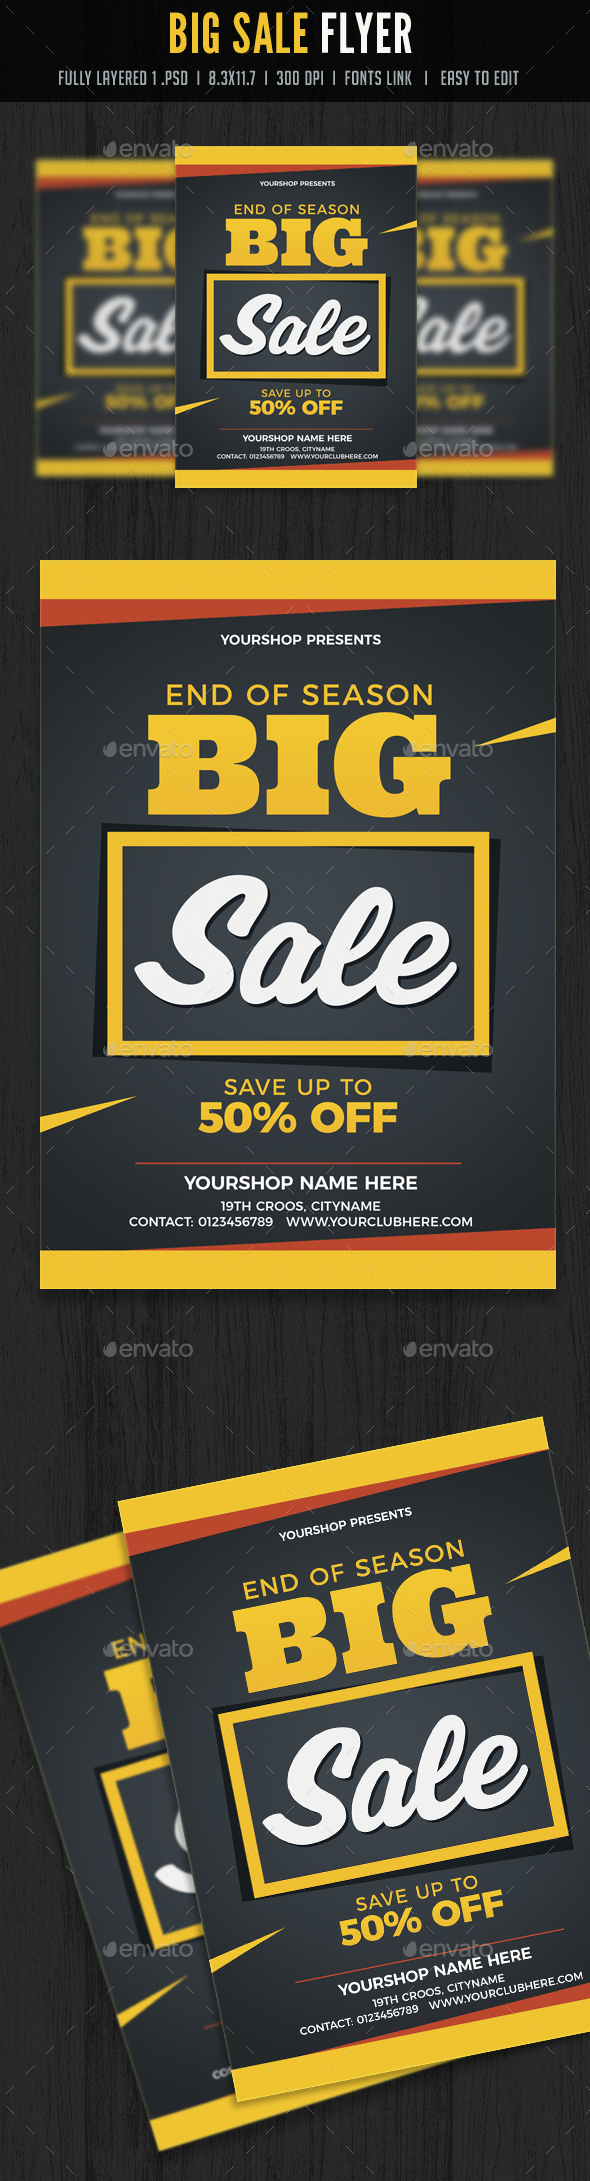 Big Sale Flyer / Poster